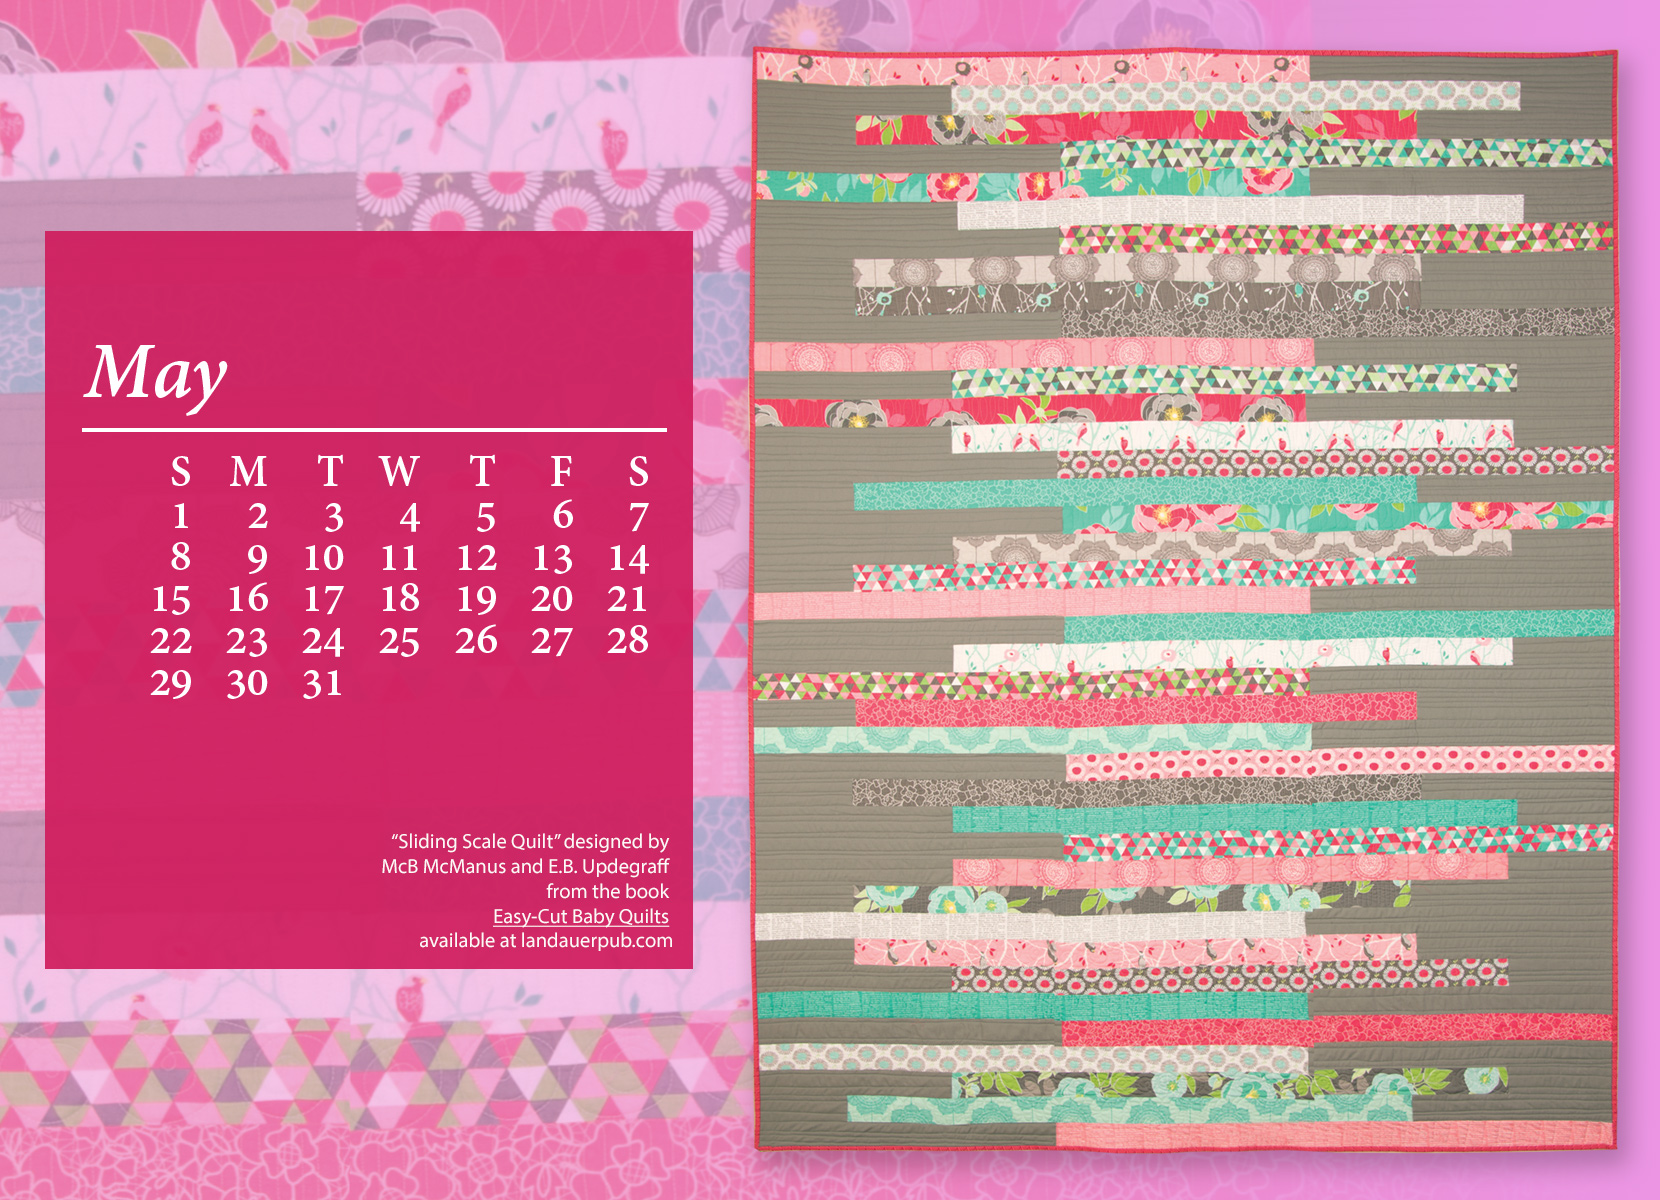 May Calendar Book : Free quilt computer wallpaper